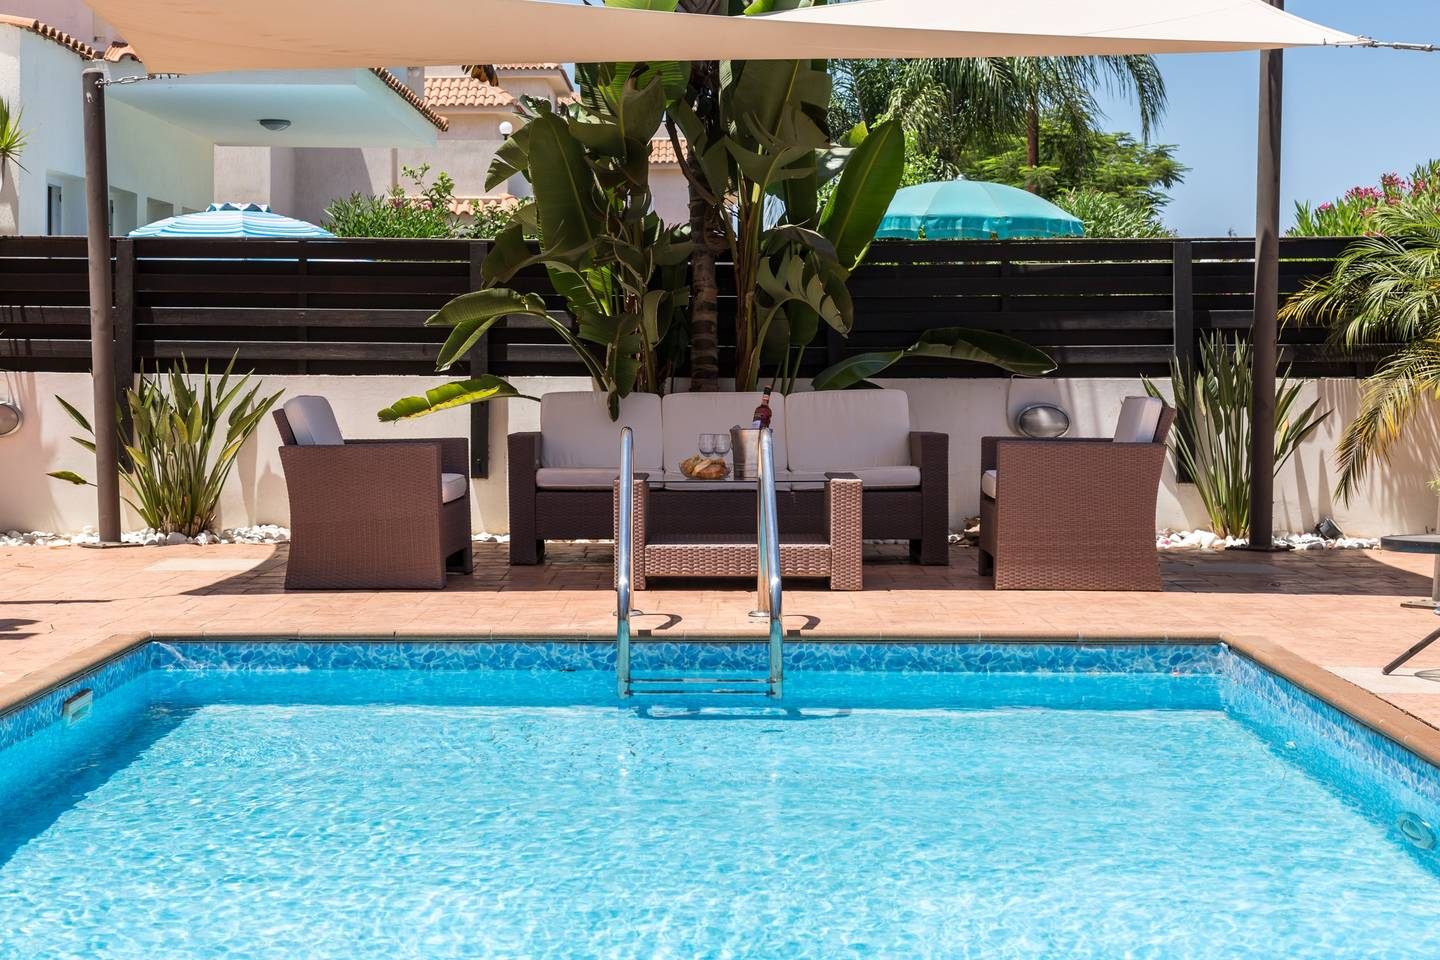 Apartment Villa Lucia - Luxurious 3 Bedroom Villa with Pool photo 23934533